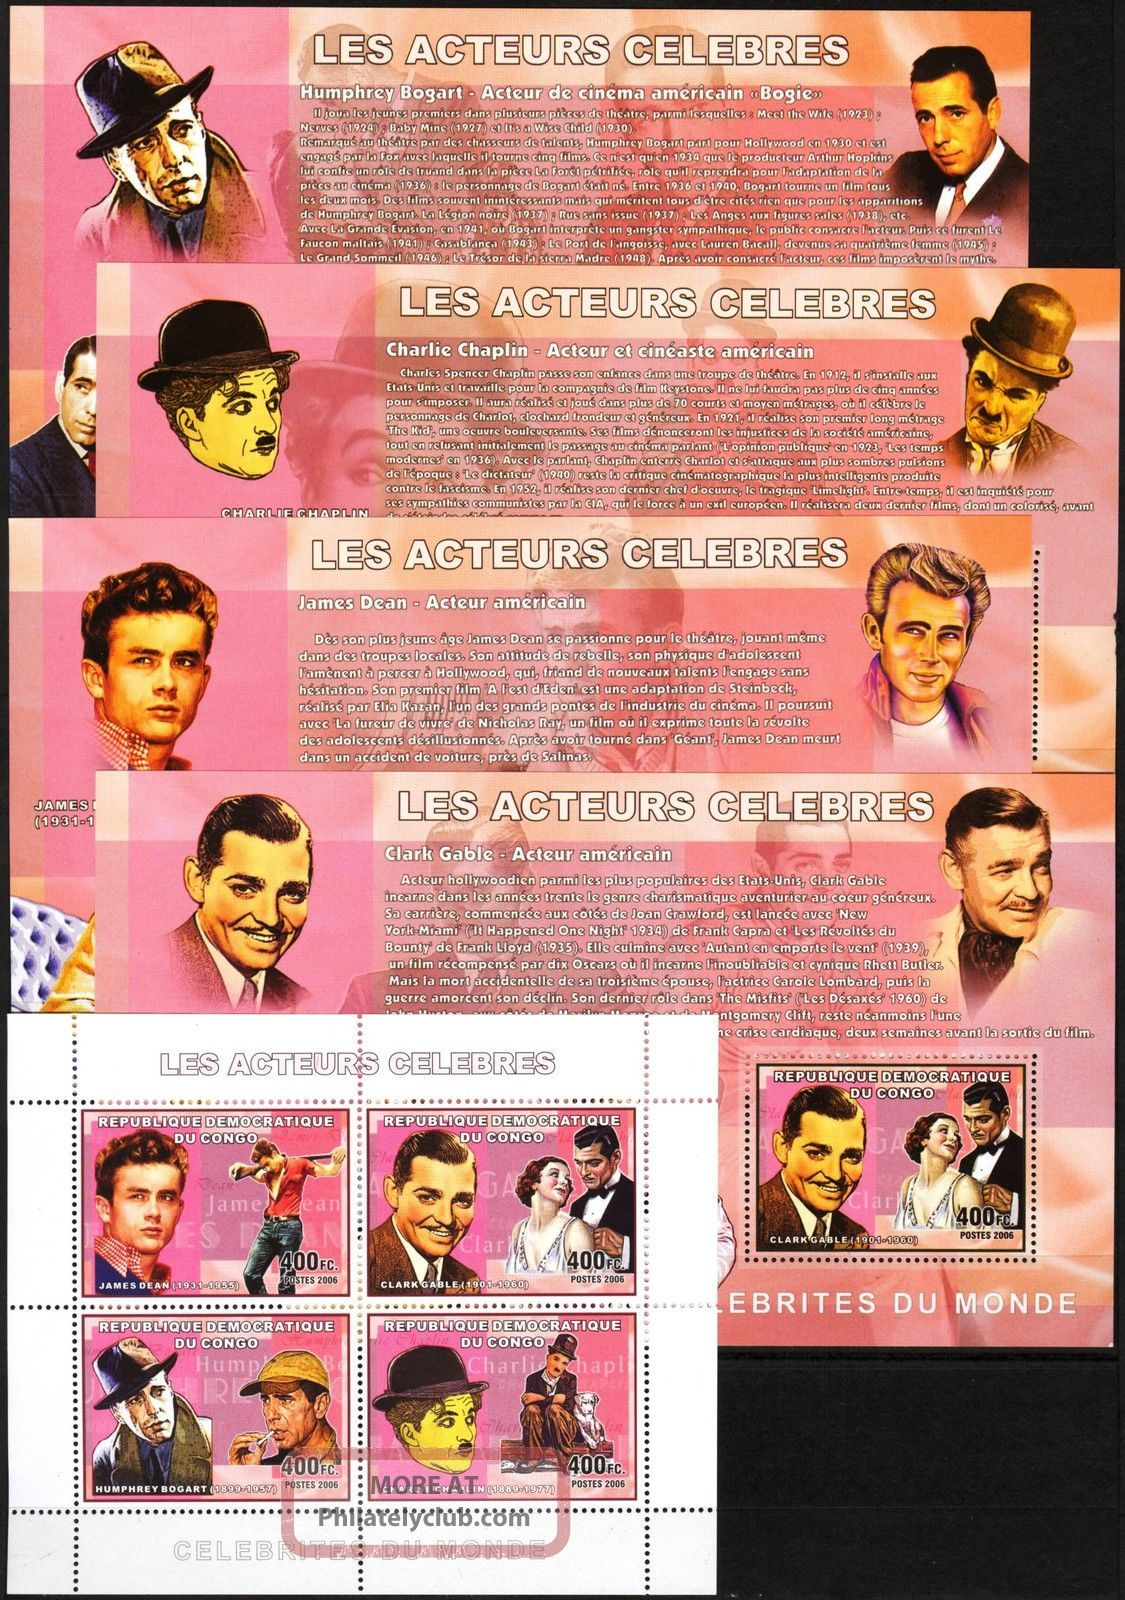 Congo 2006 Art Cinema Actors C.  Gable C.  Chaplin J.  Dean H.  Bogart 5 S/s Topical Stamps photo